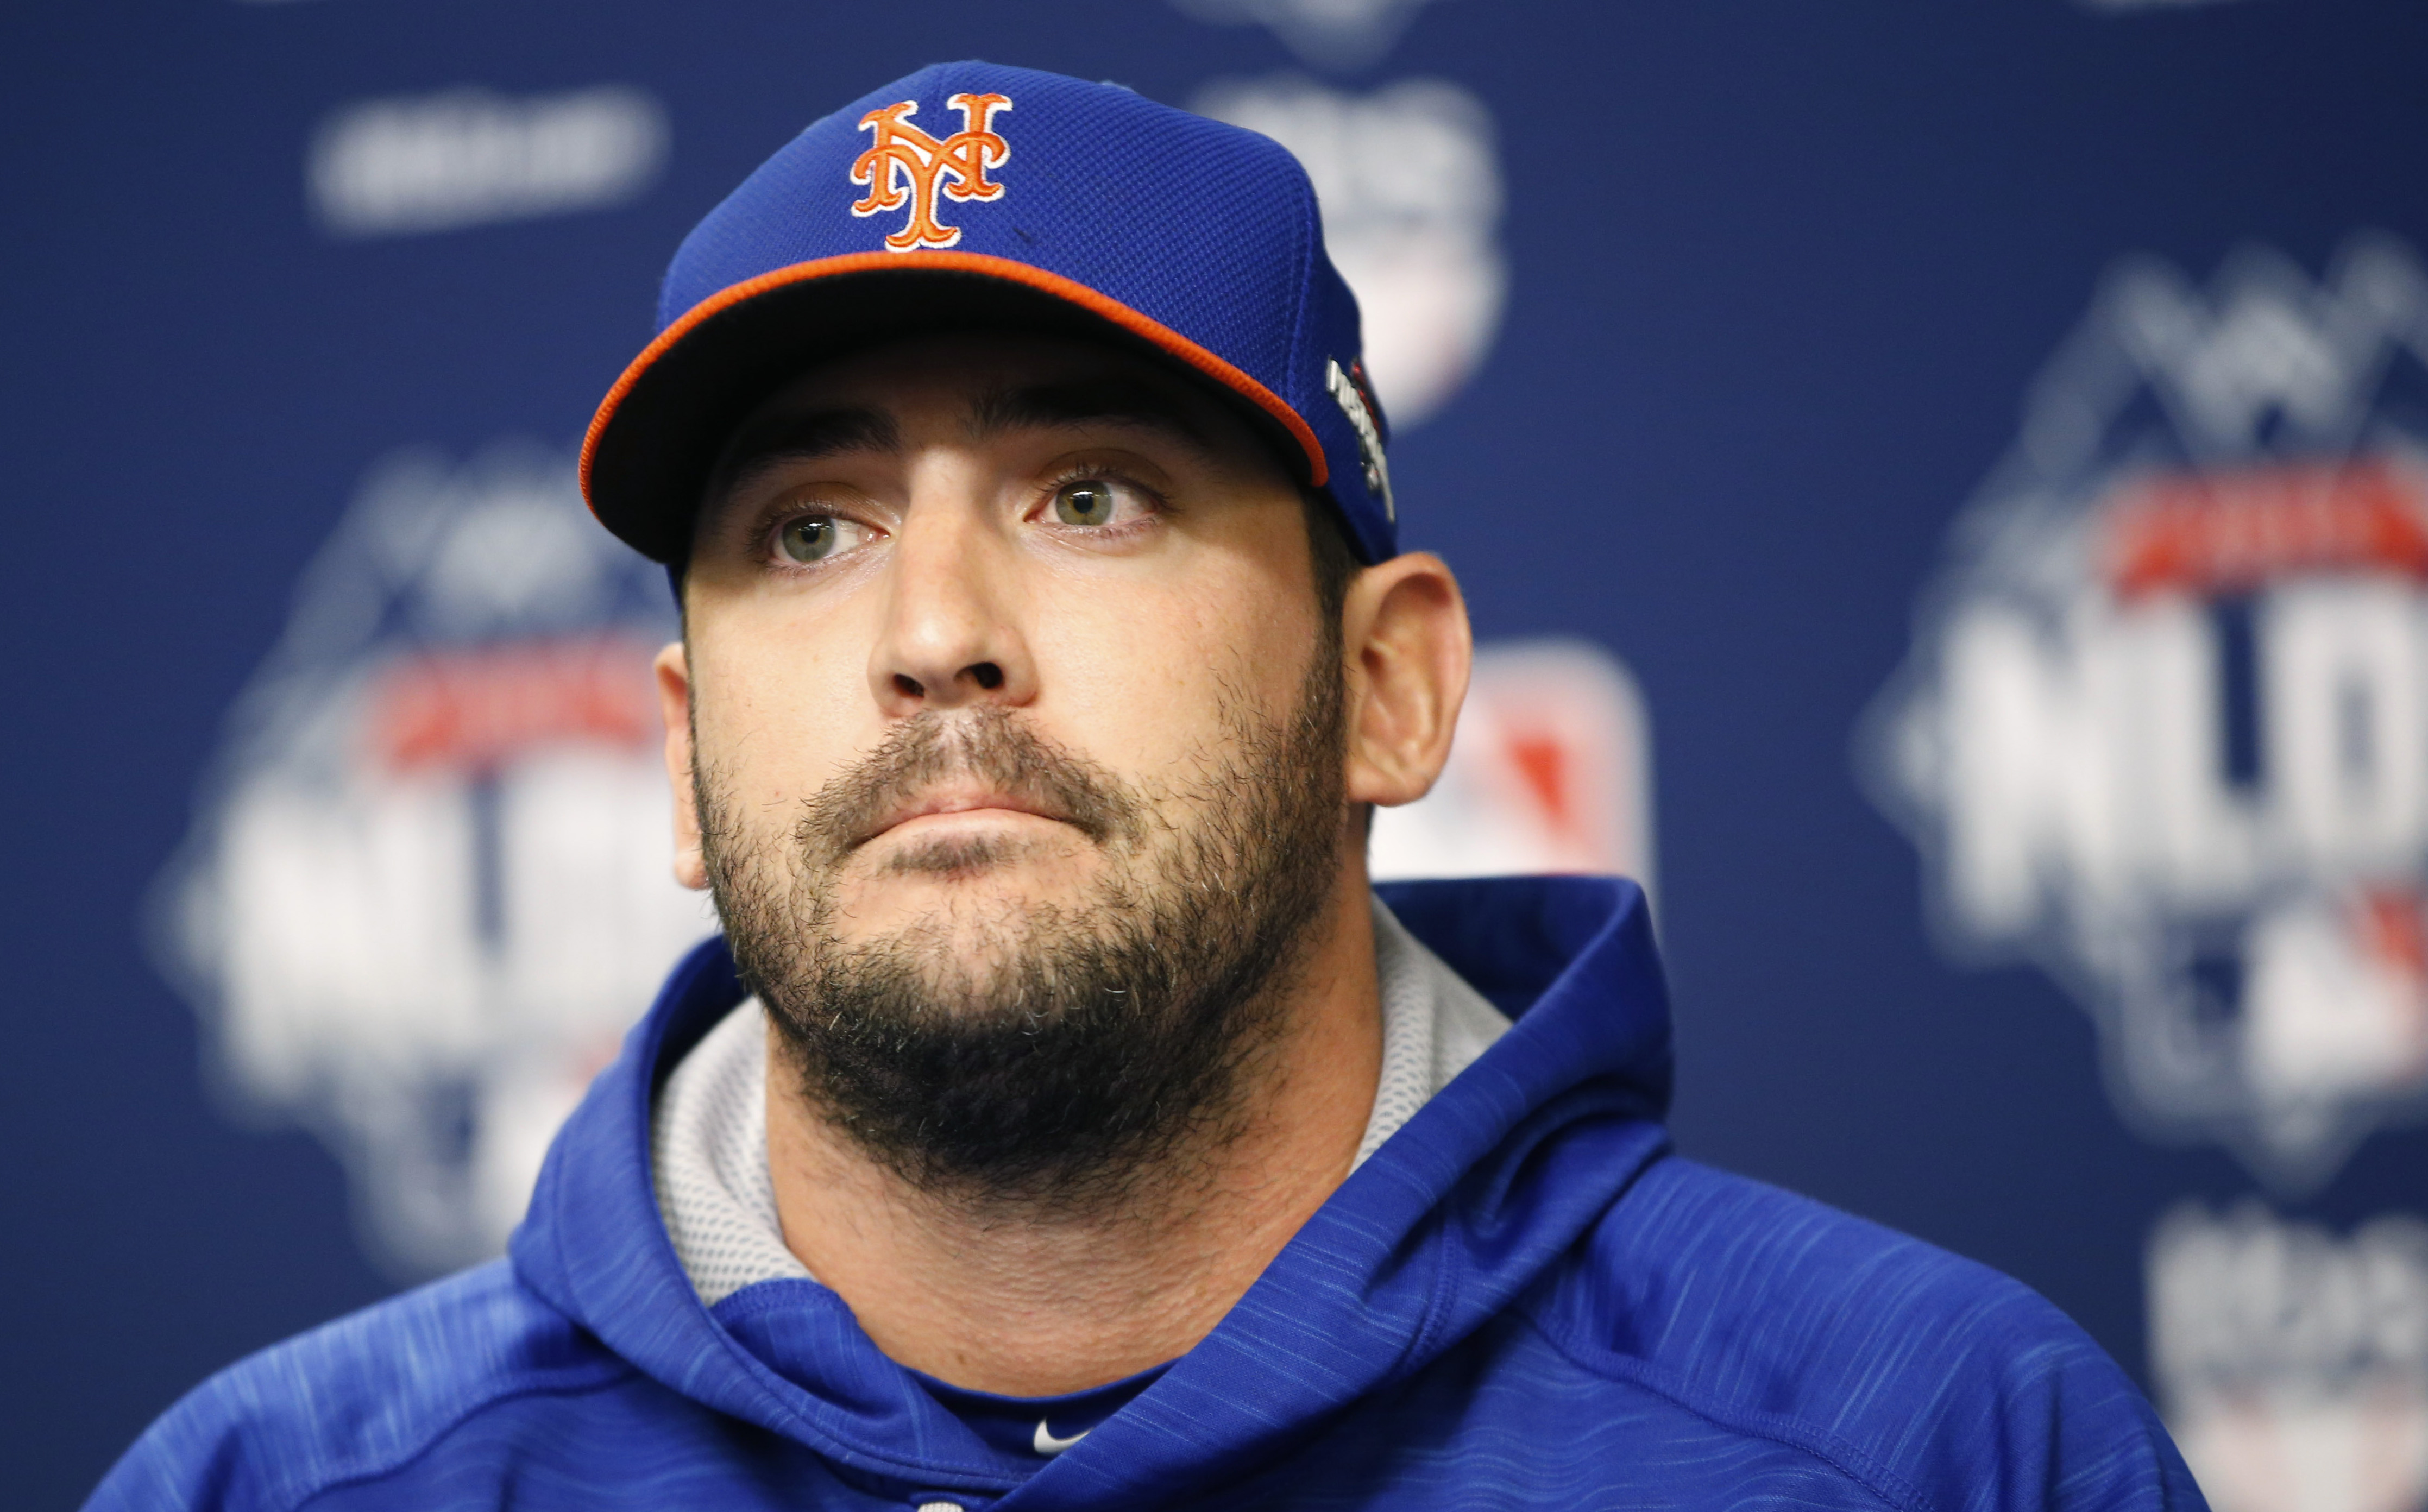 New York Mets Game 3 starter Matt Harvey appears during a National League Division Series baseball workout day, Sunday, Oct. 11, 2015, in preparation for Monday's Game 3 against the Los Angeles Dodgers at CitiField in New York. (AP Photo/Kathy Willens)